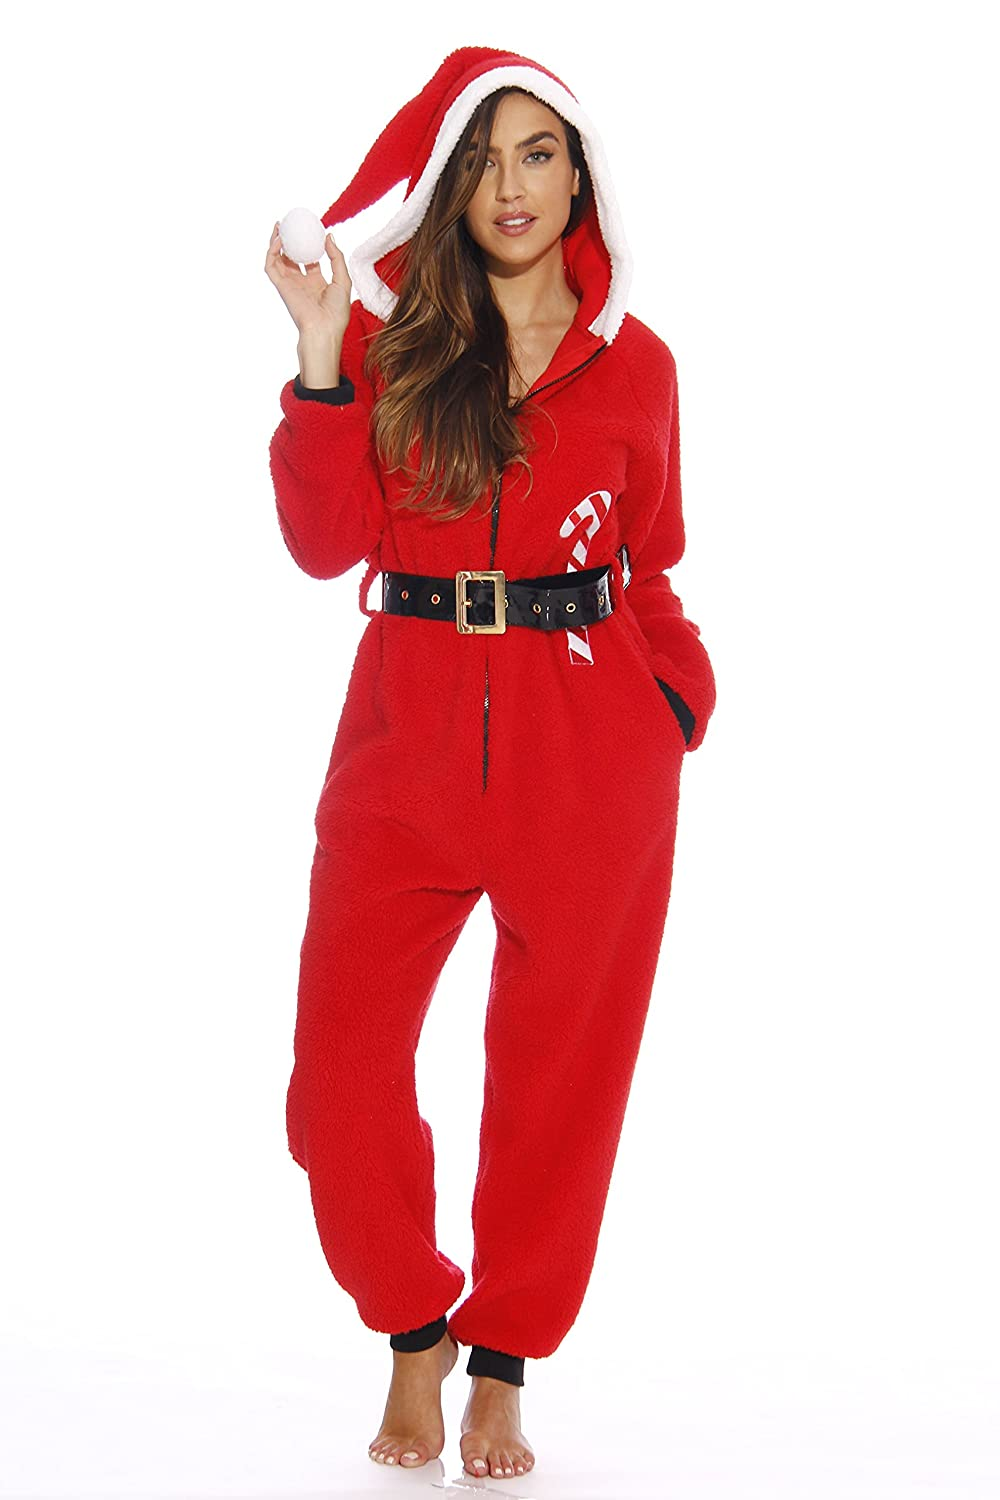 #FollowMe Holiday Adult Onesie / Pajamas